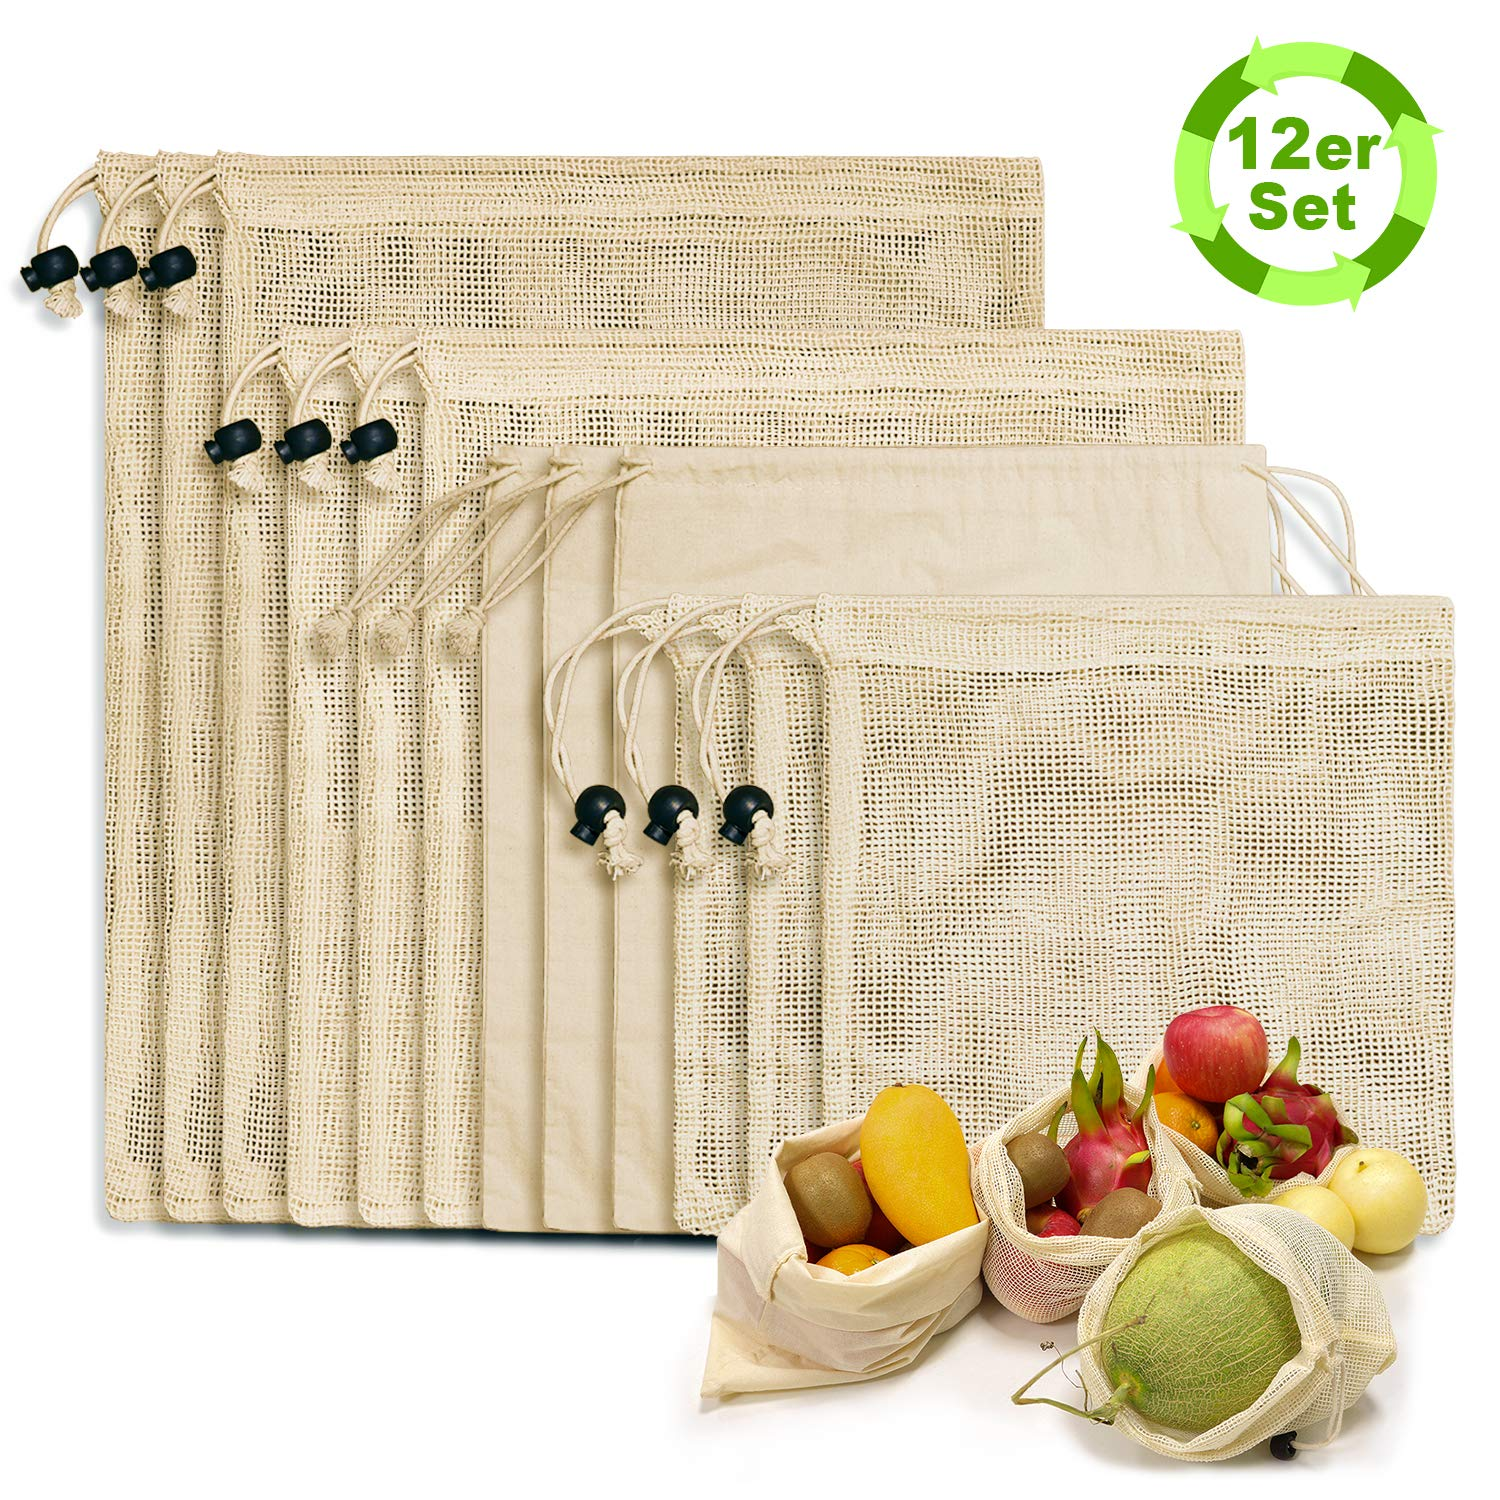 N NEWKOIN Reusable Shopping Bags, 12-Set Reusable Product Bags Organic Cotton Washable Plastic-Free Bags Zero Waste Shopping Net Bags